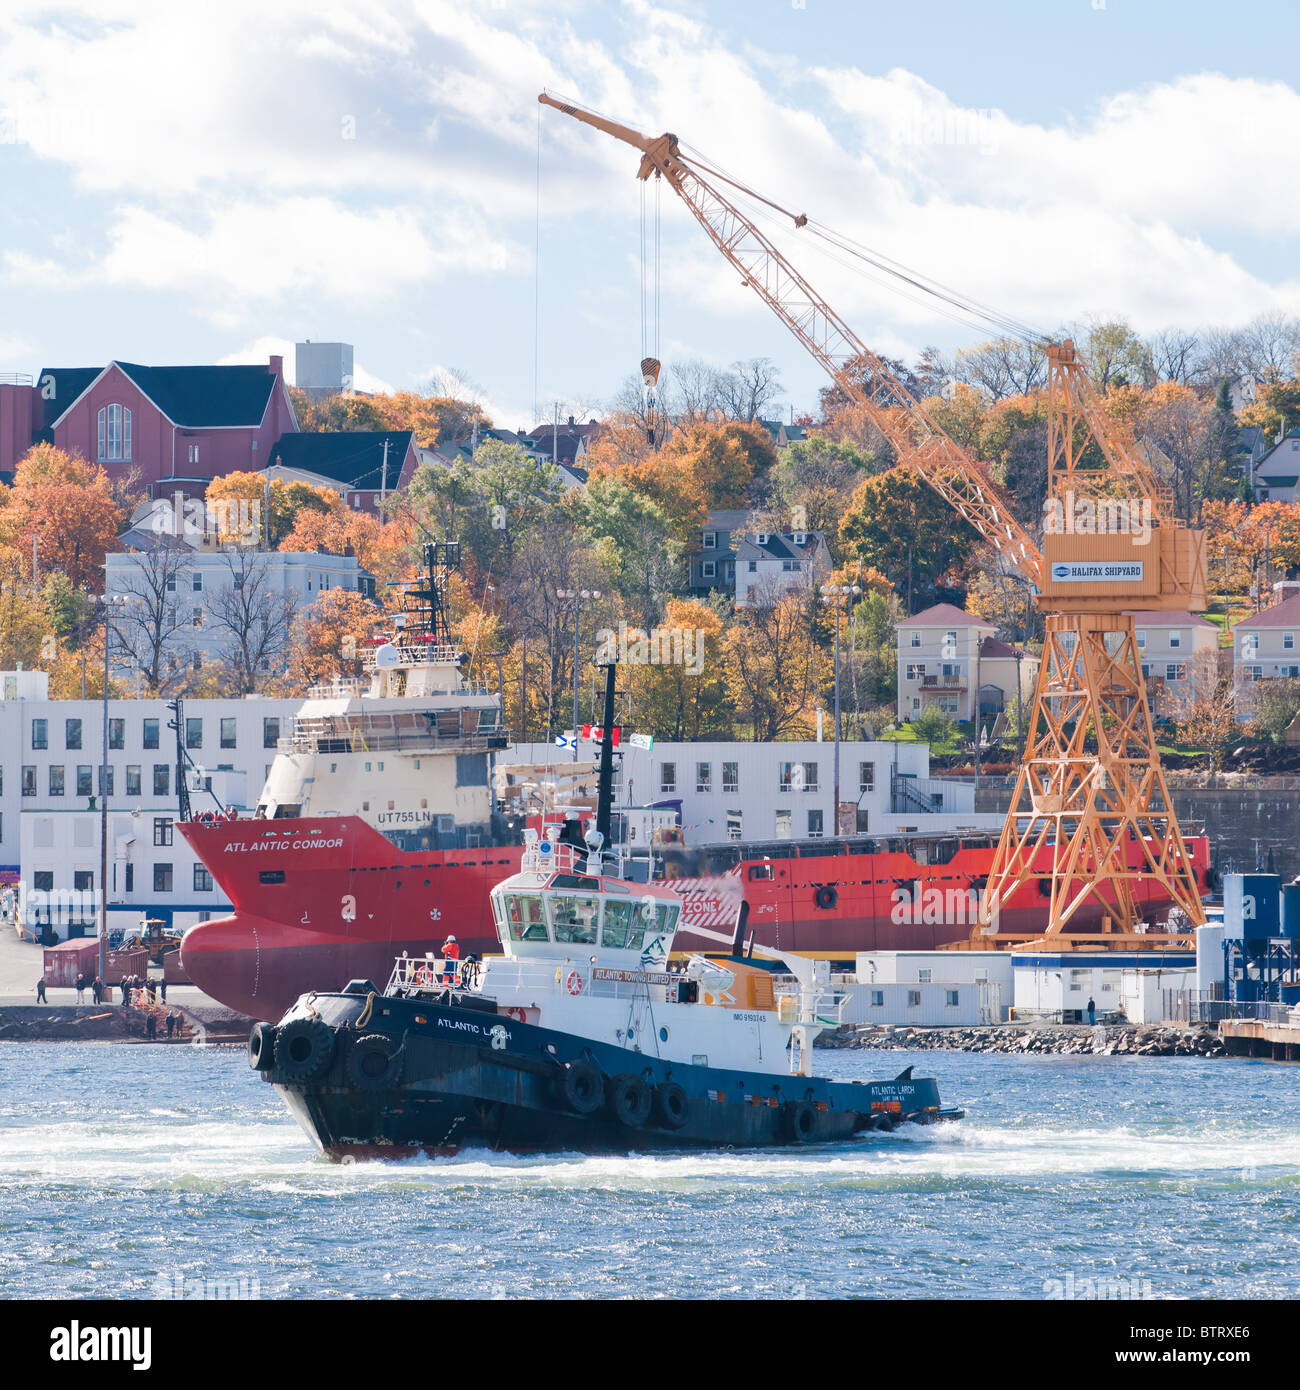 The tug Atlantic Larch turns in front of the rig supplier Atlantic Condor  the Halifax Shipyard in Nova Scotia, - Stock Image